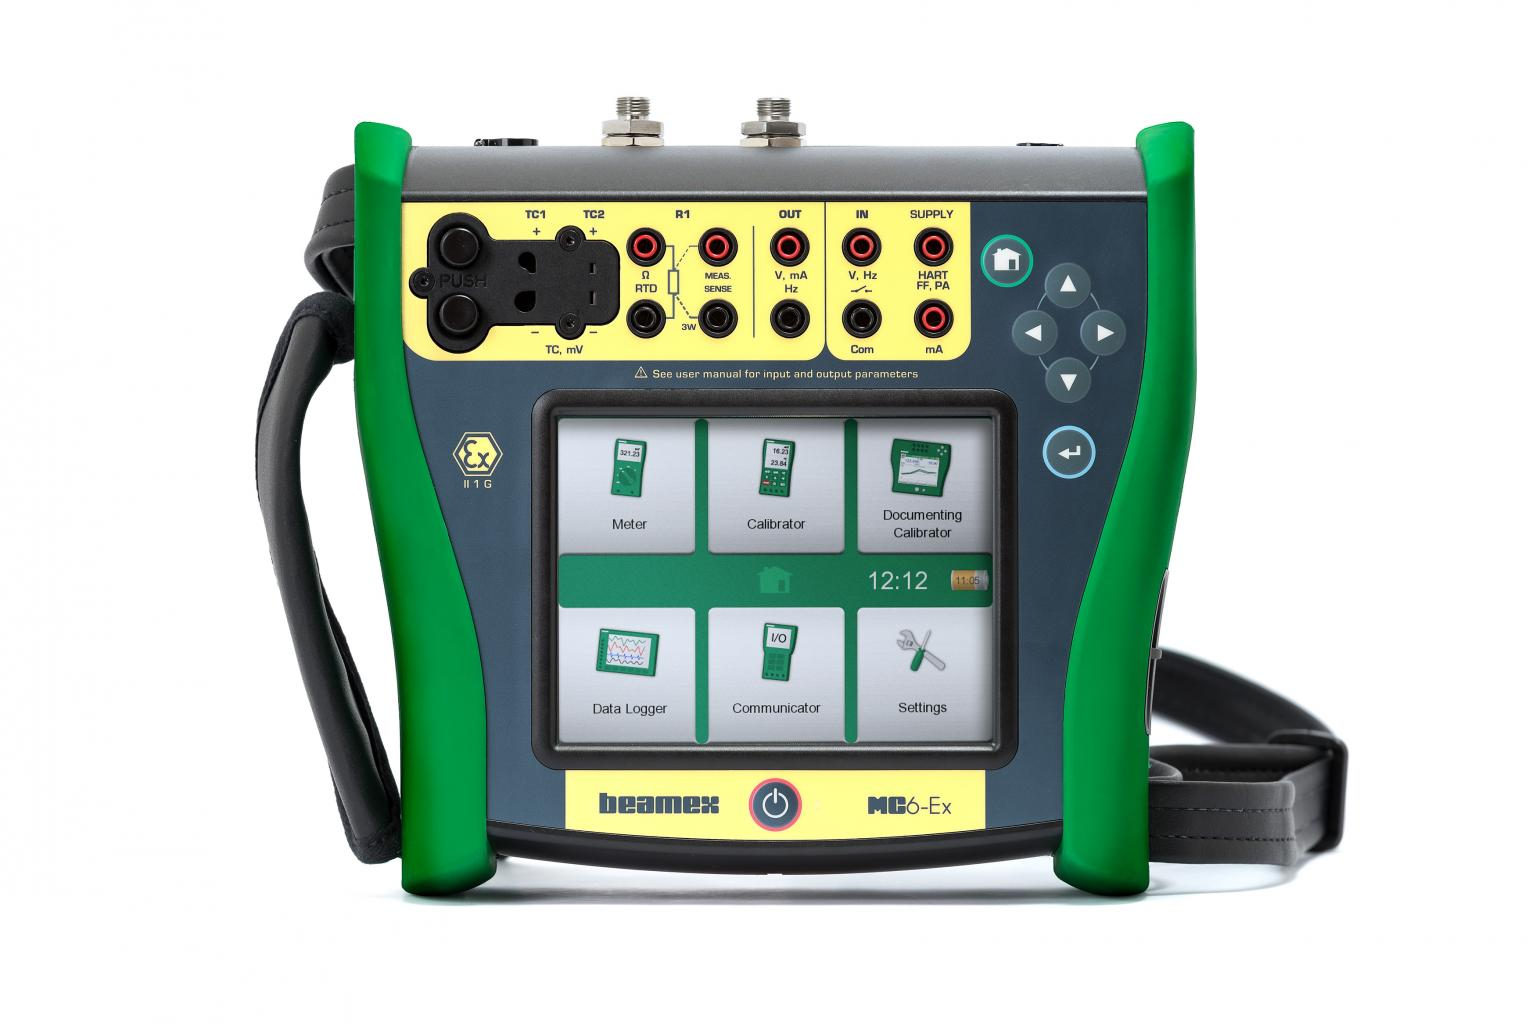 Beamex Mc6-Ex Intrinsically safe calibrator